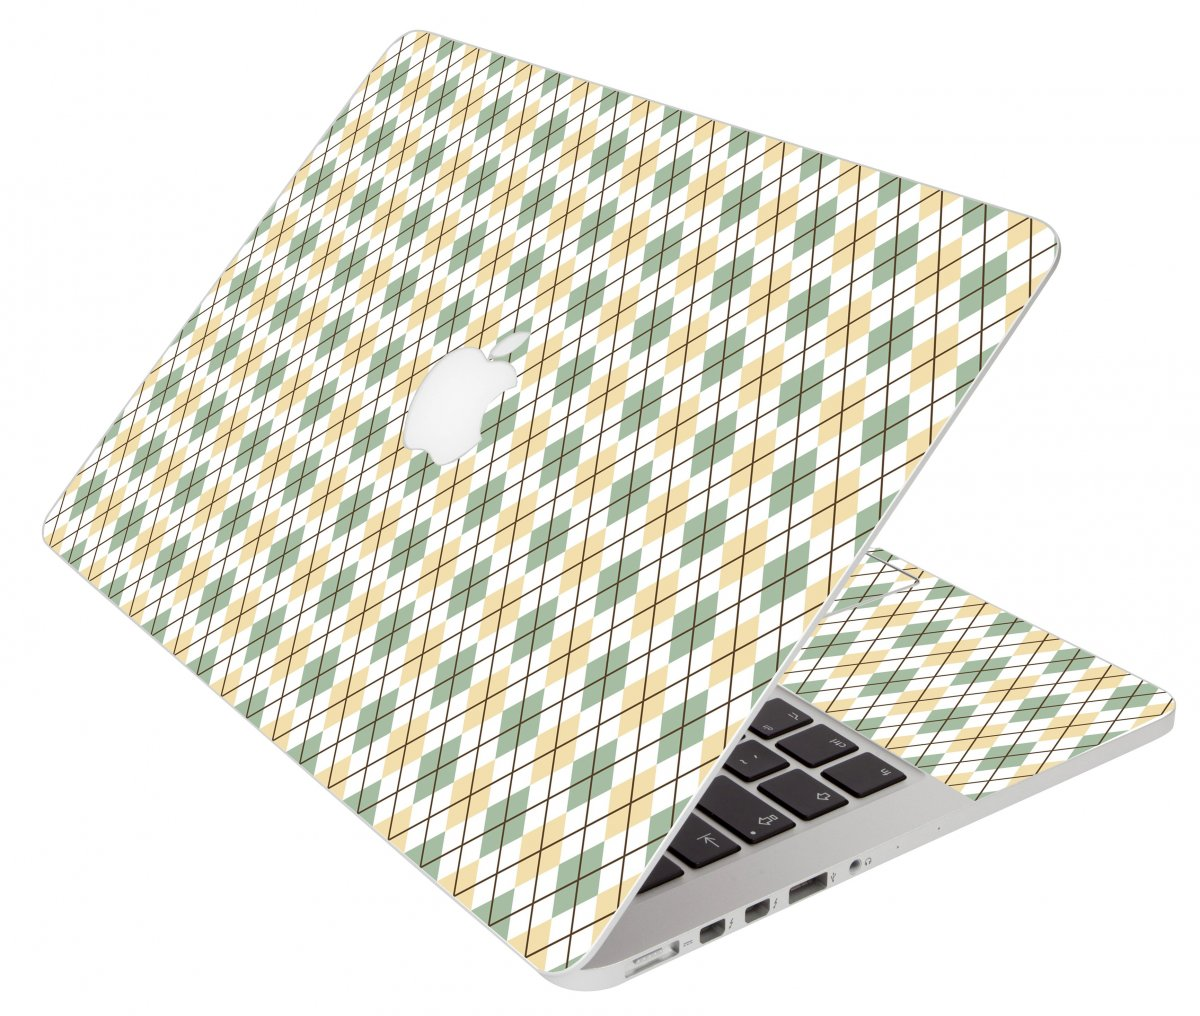 Argyle Apple Macbook Air 11 A1370 Laptop Skin